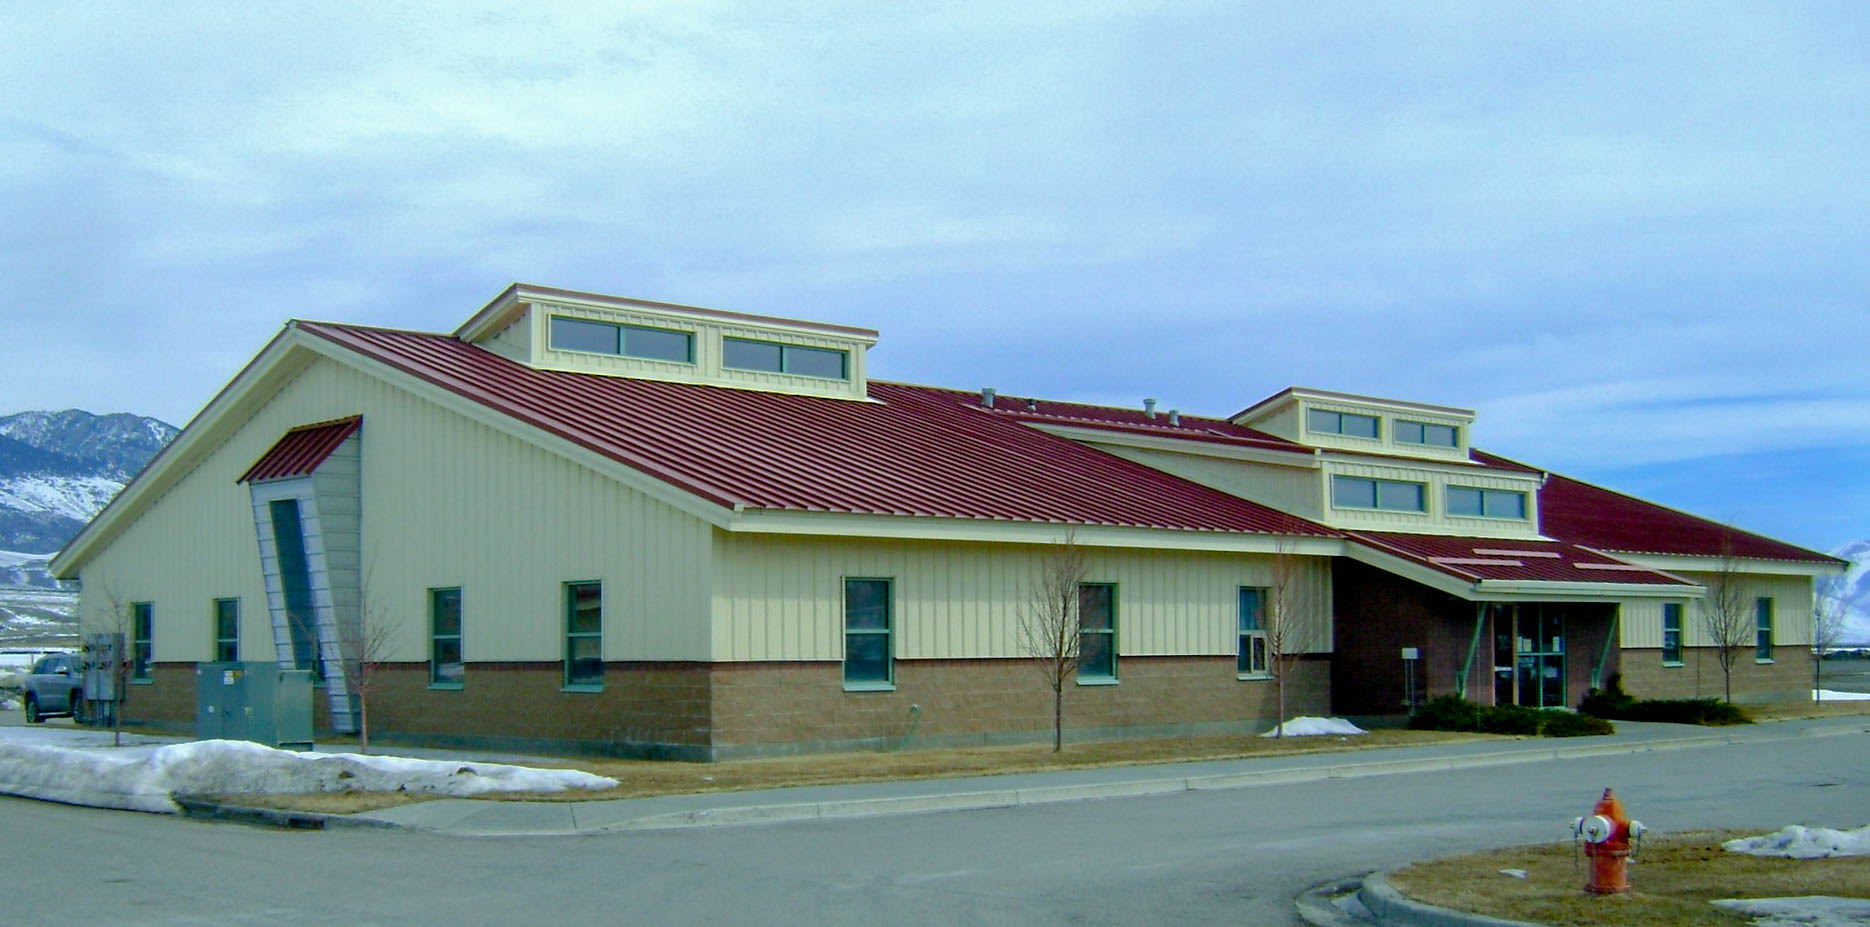 Office and core store in Mackay, Idaho